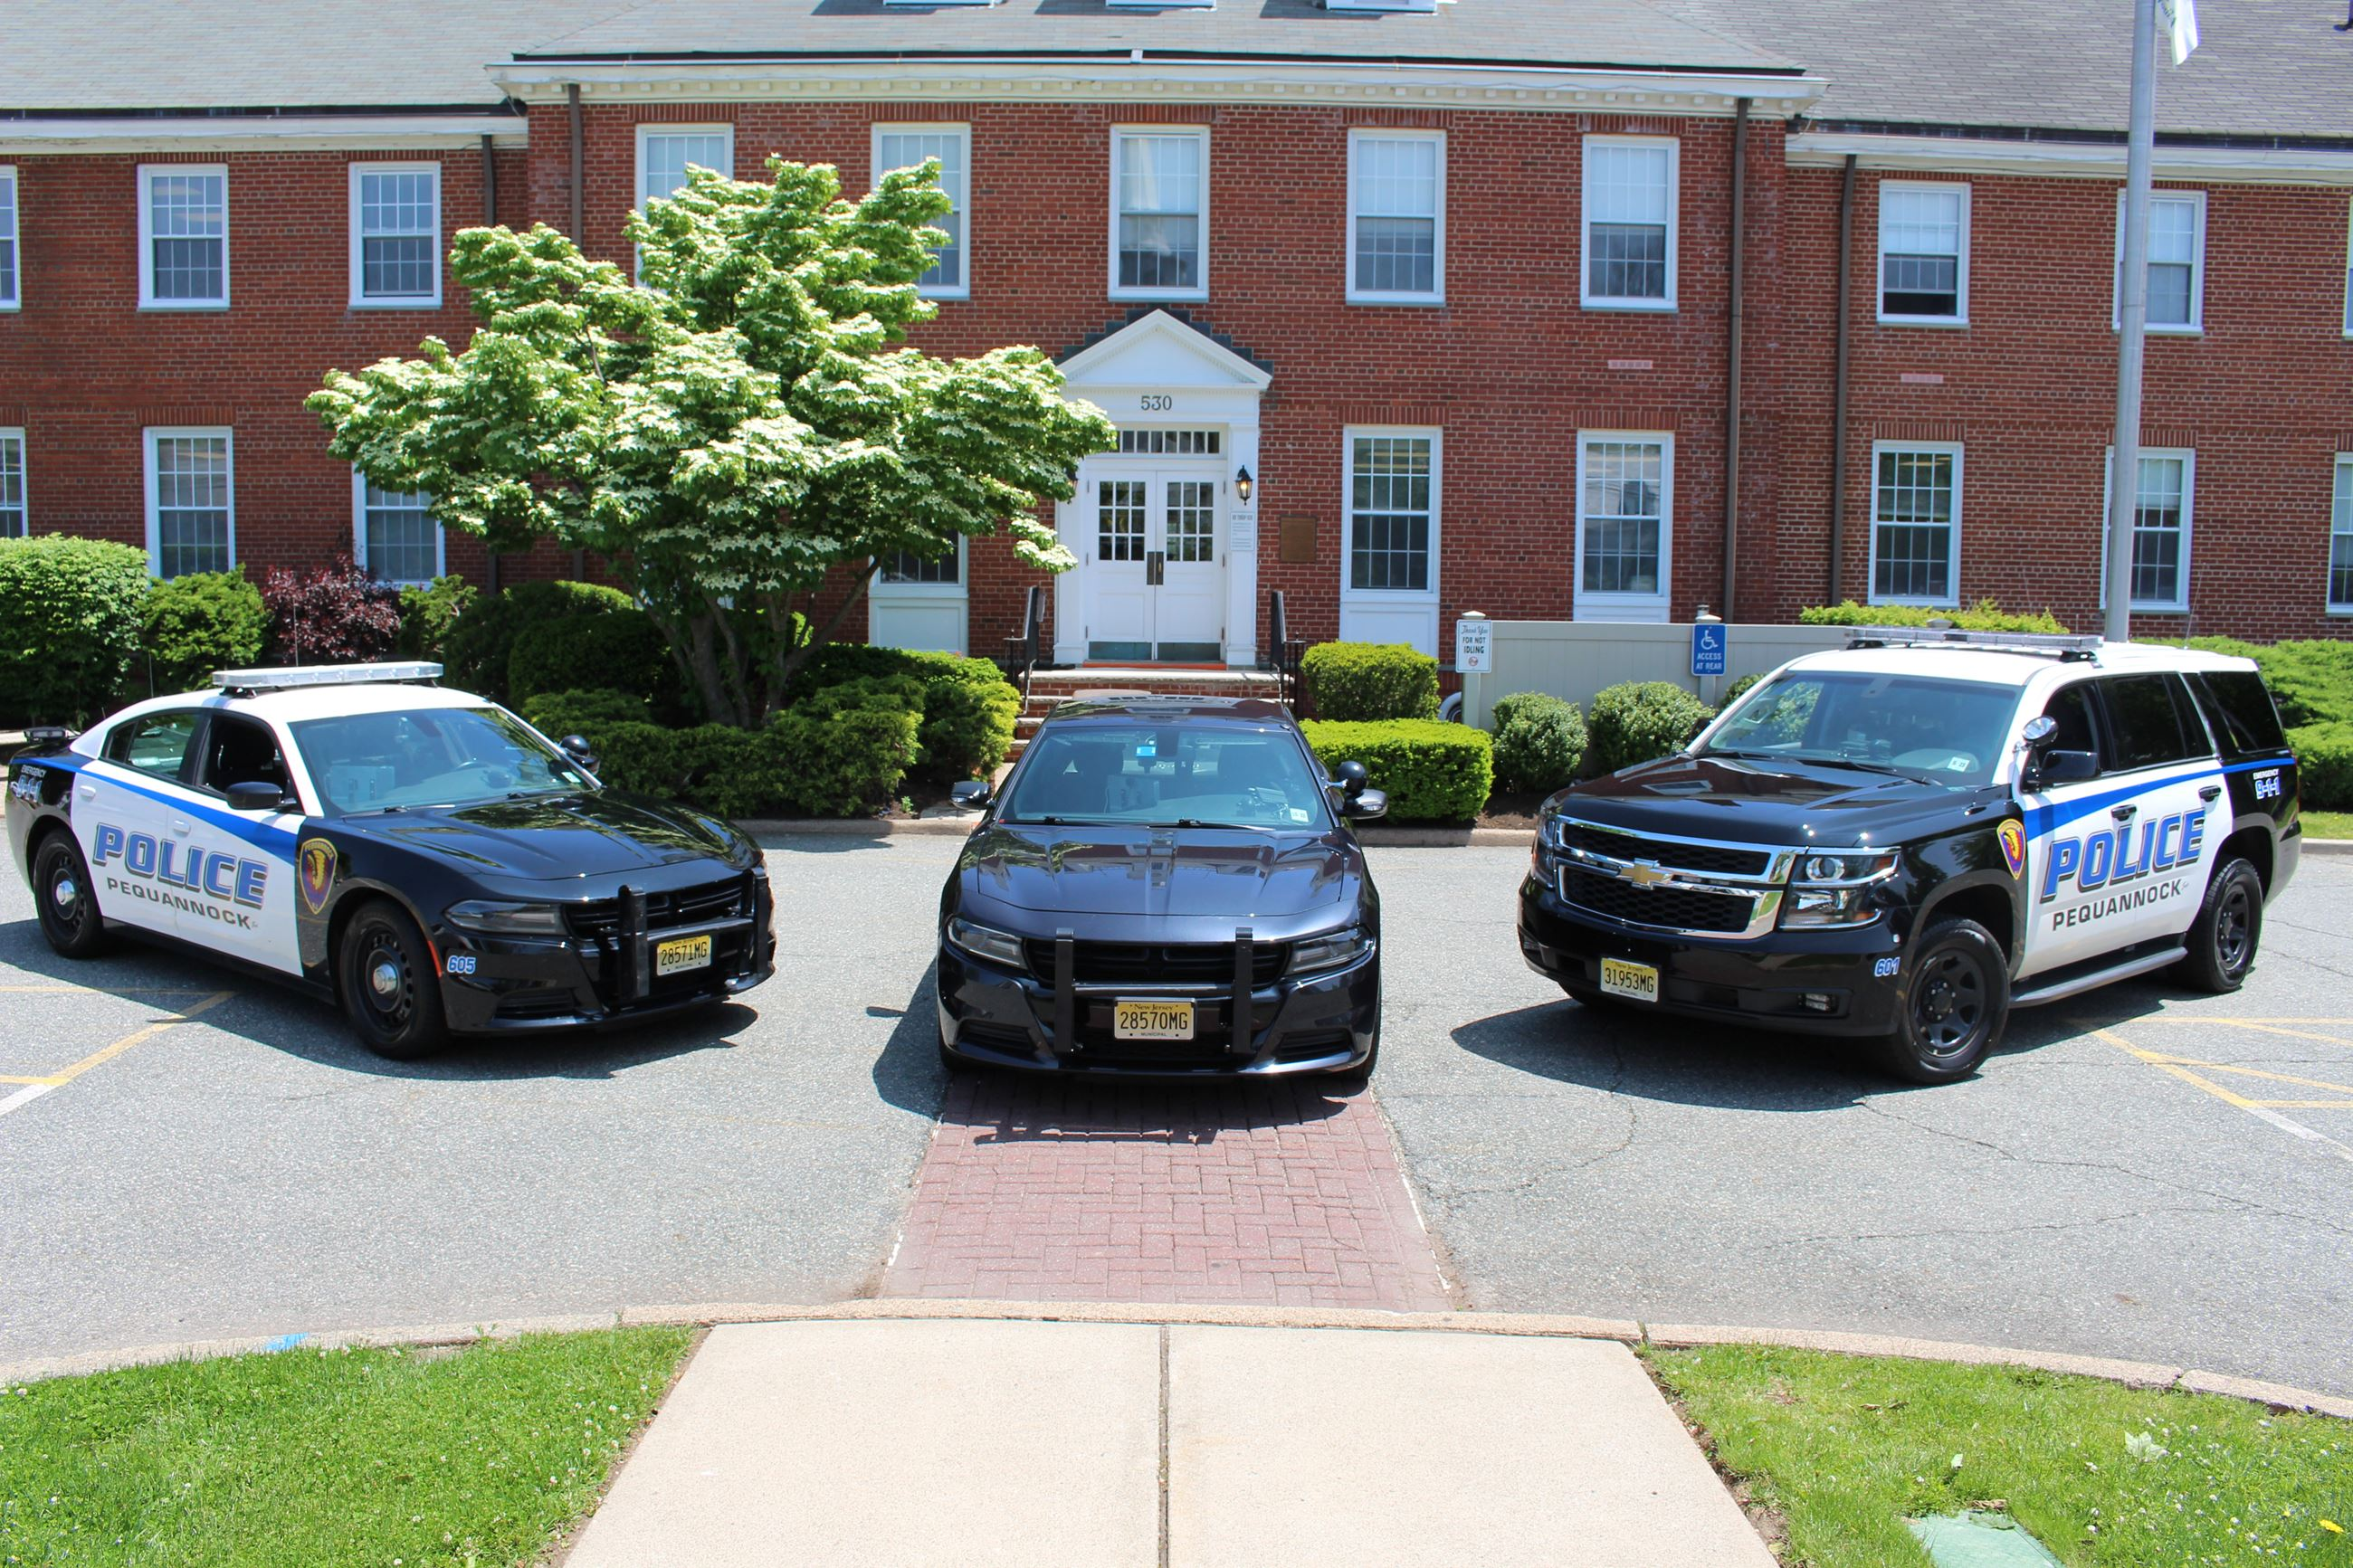 Pequannock Township Police - Patrol Division